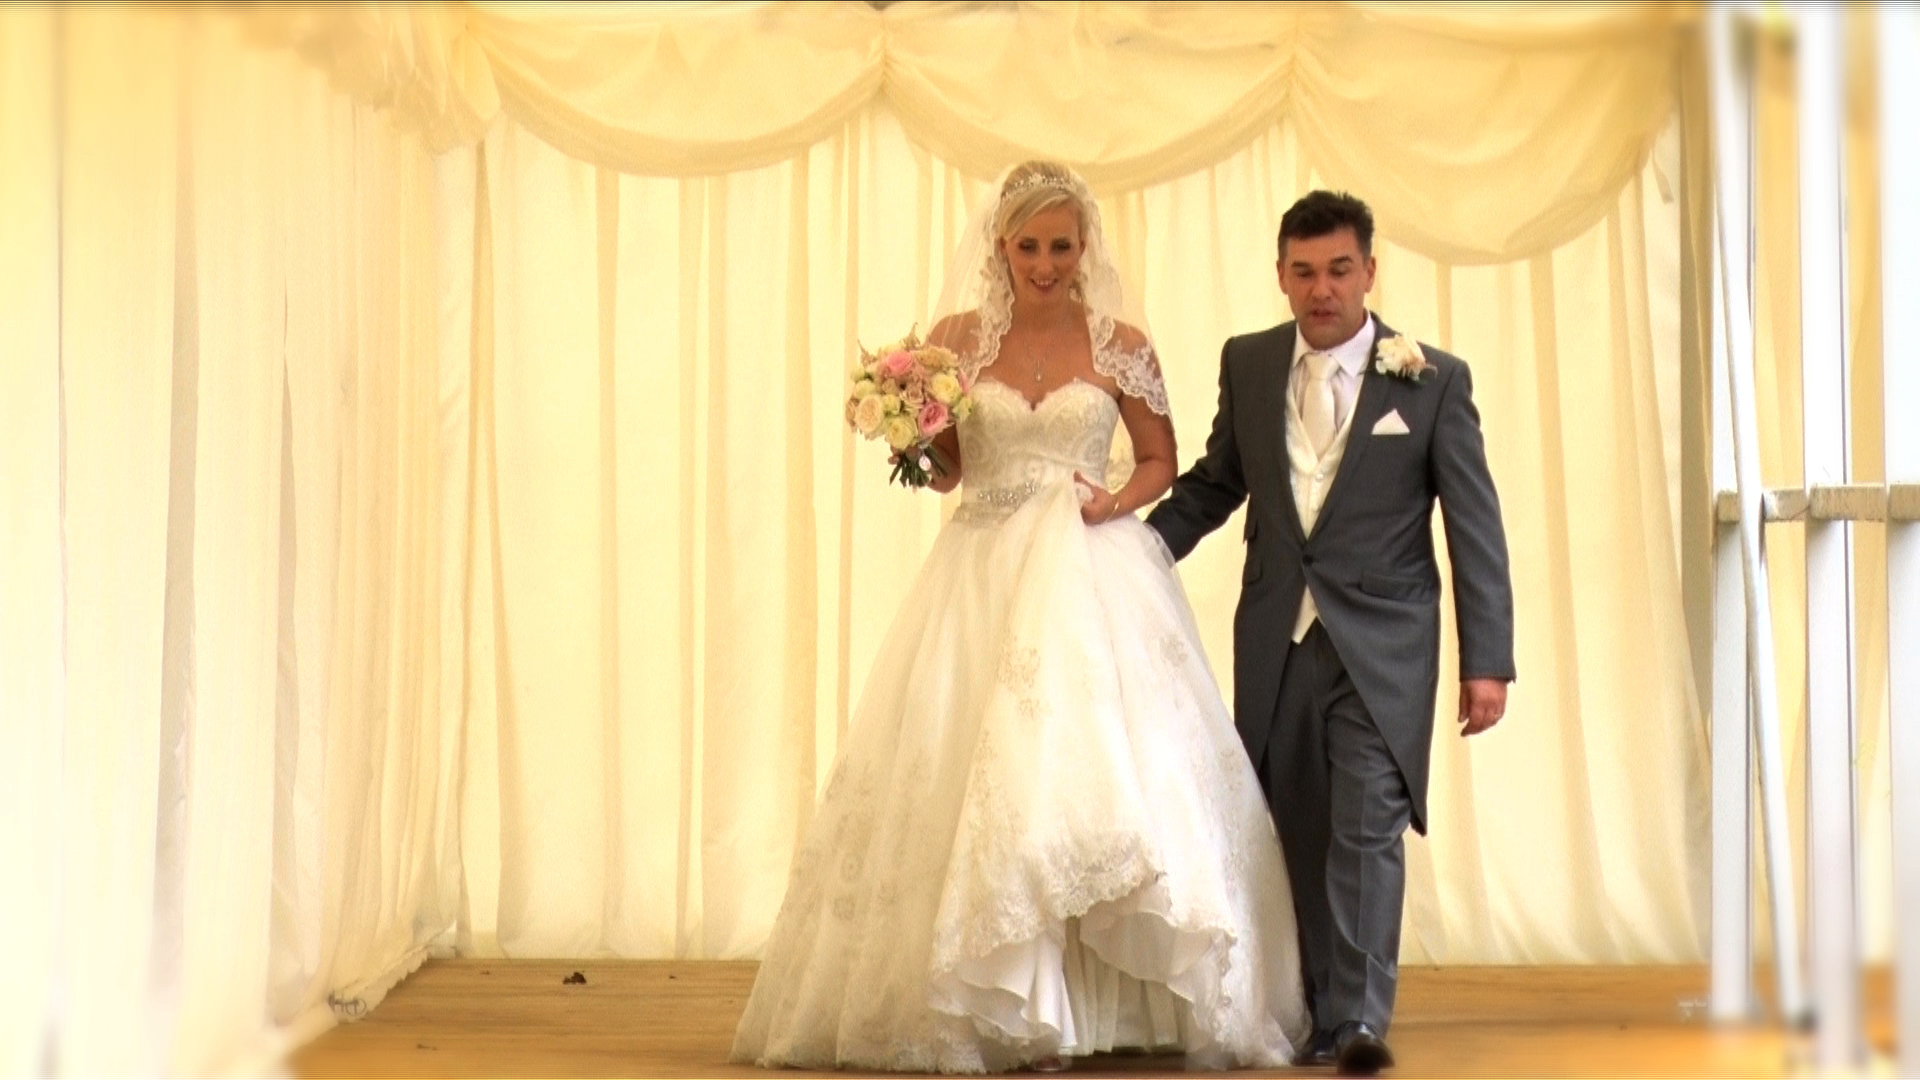 Wedding video special offers